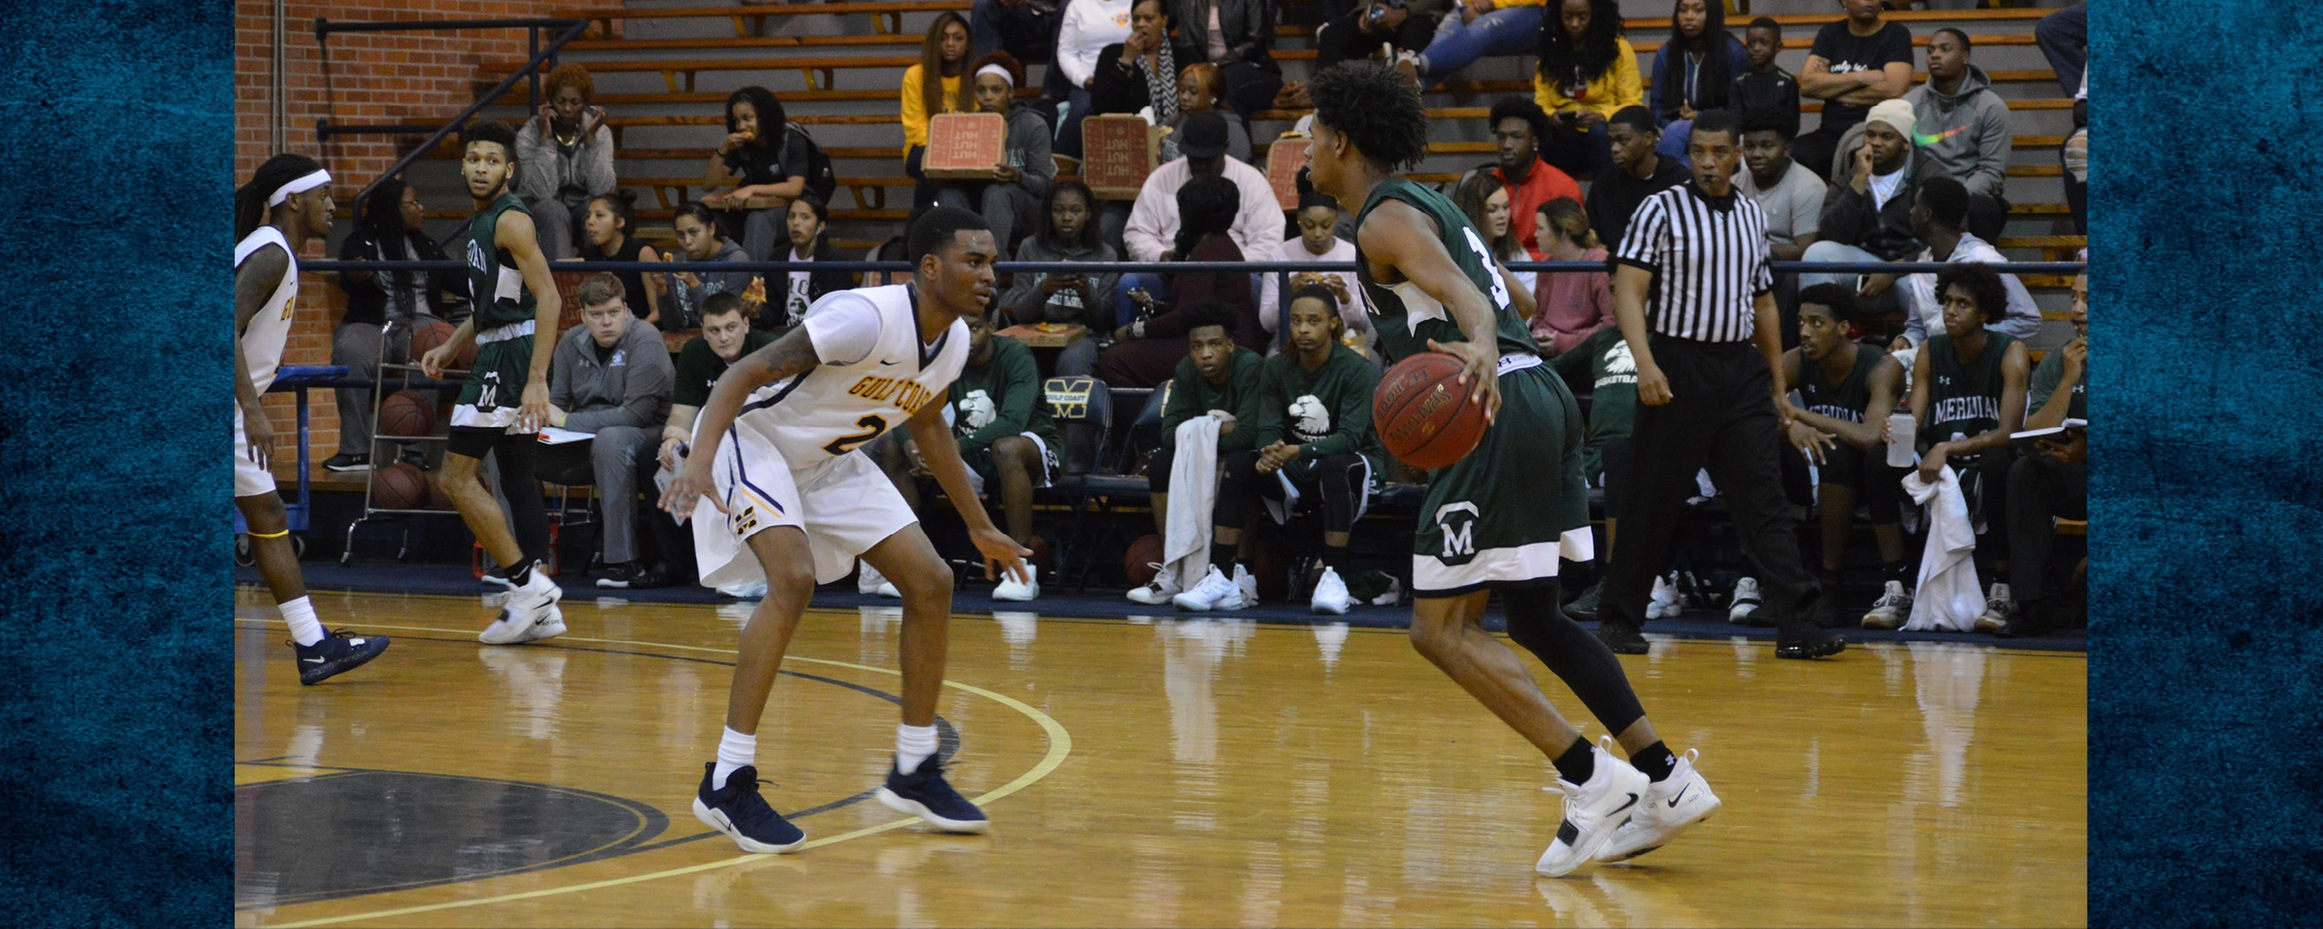 MGCCC faces No. 14 PRCC for 1st